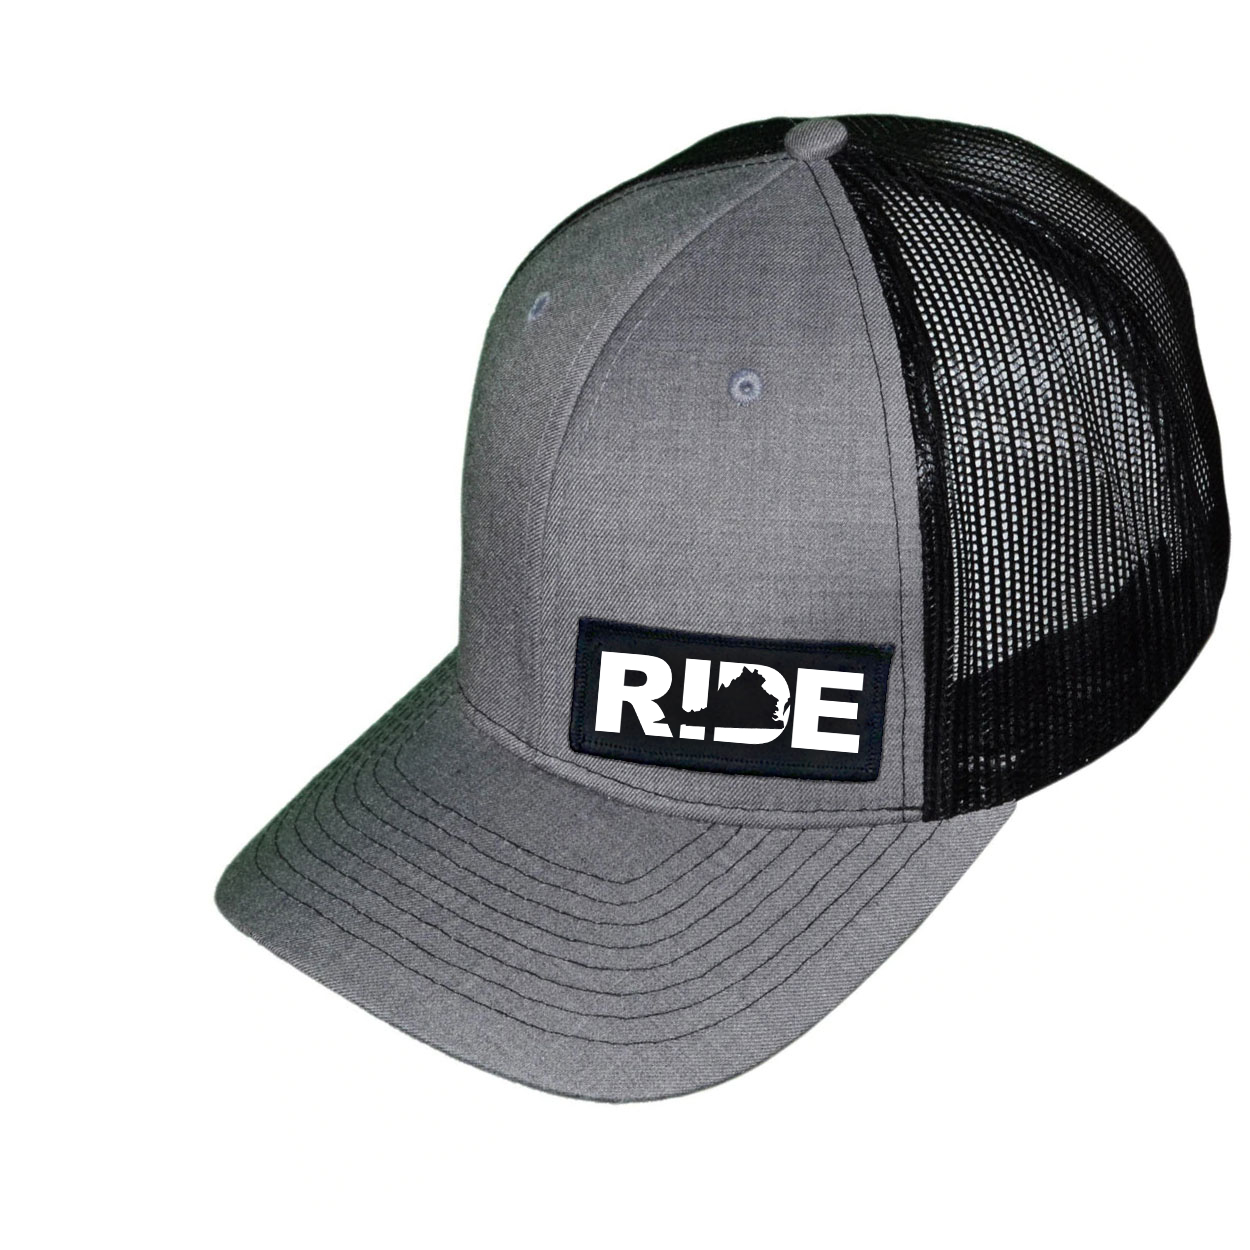 Ride Virginia Night Out Woven Patch Snapback Trucker Hat Heather Gray/Black (White Logo)